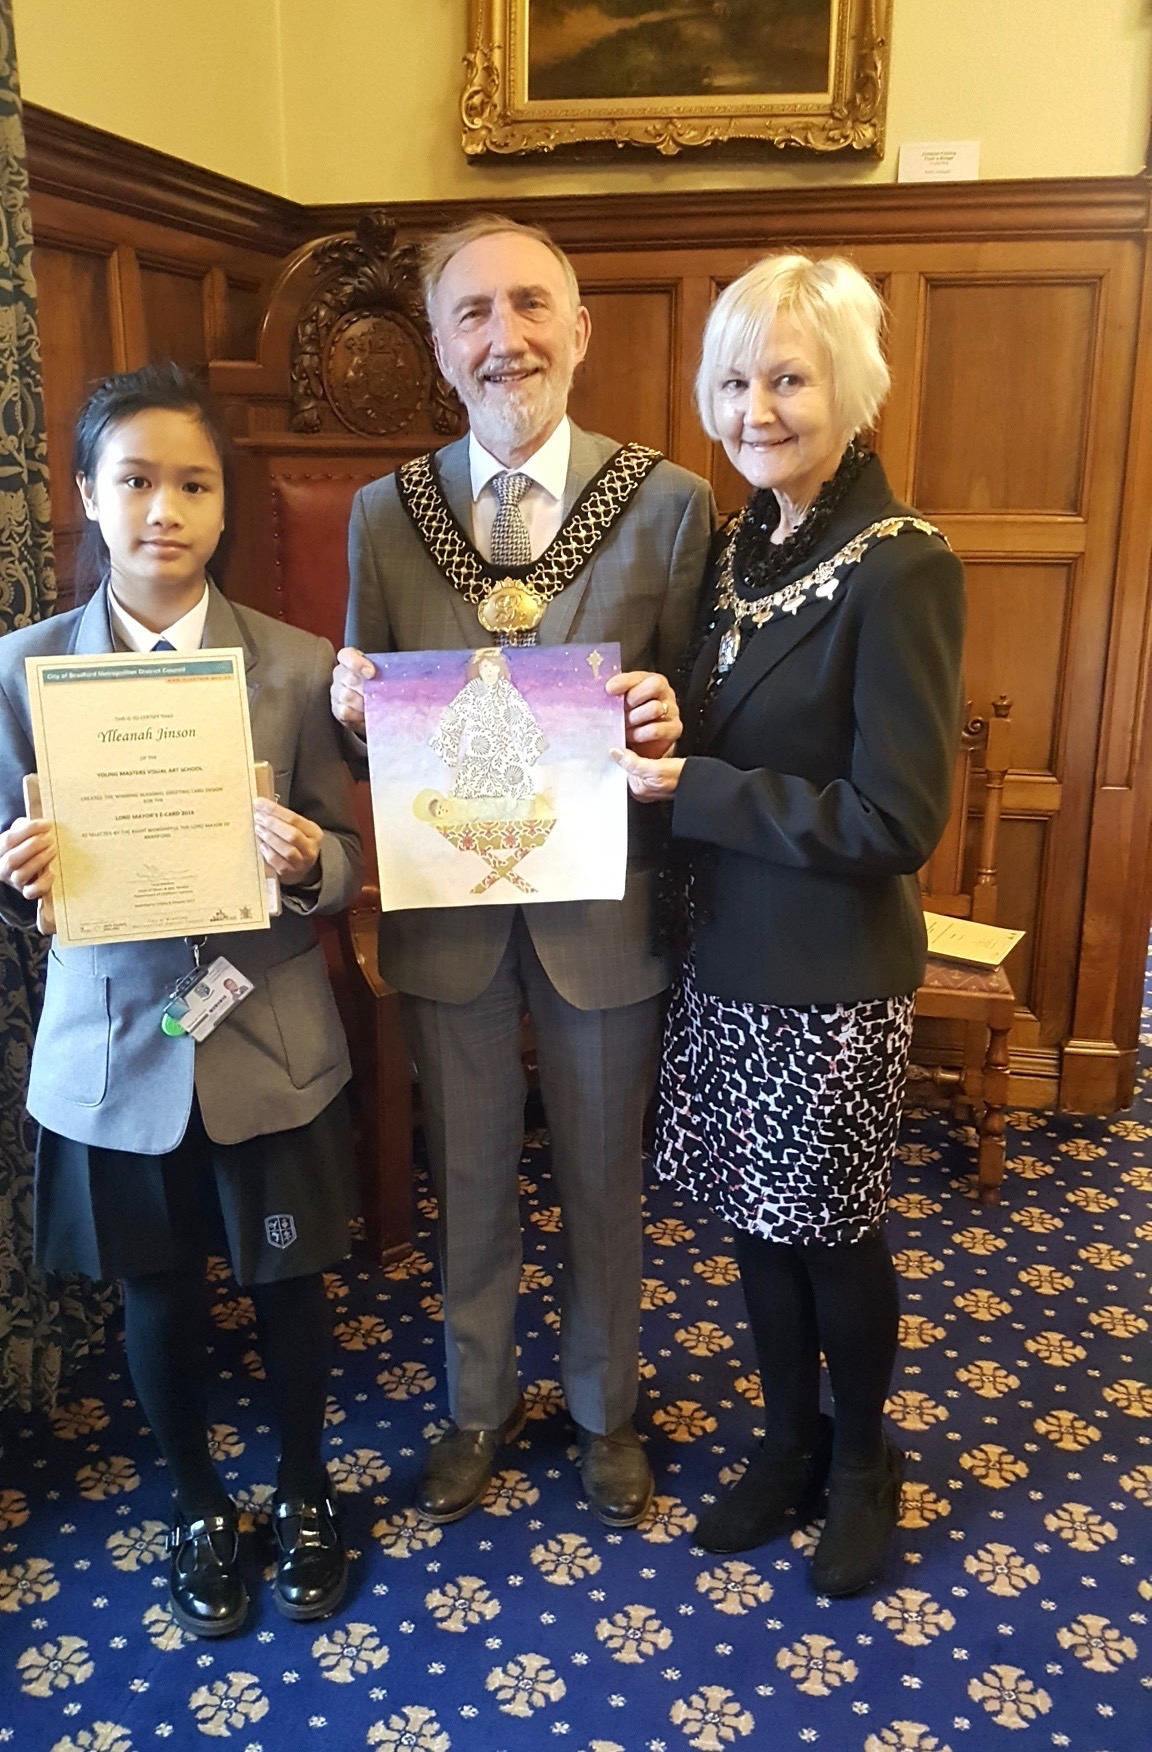 Lord Mayor with Ylleanah